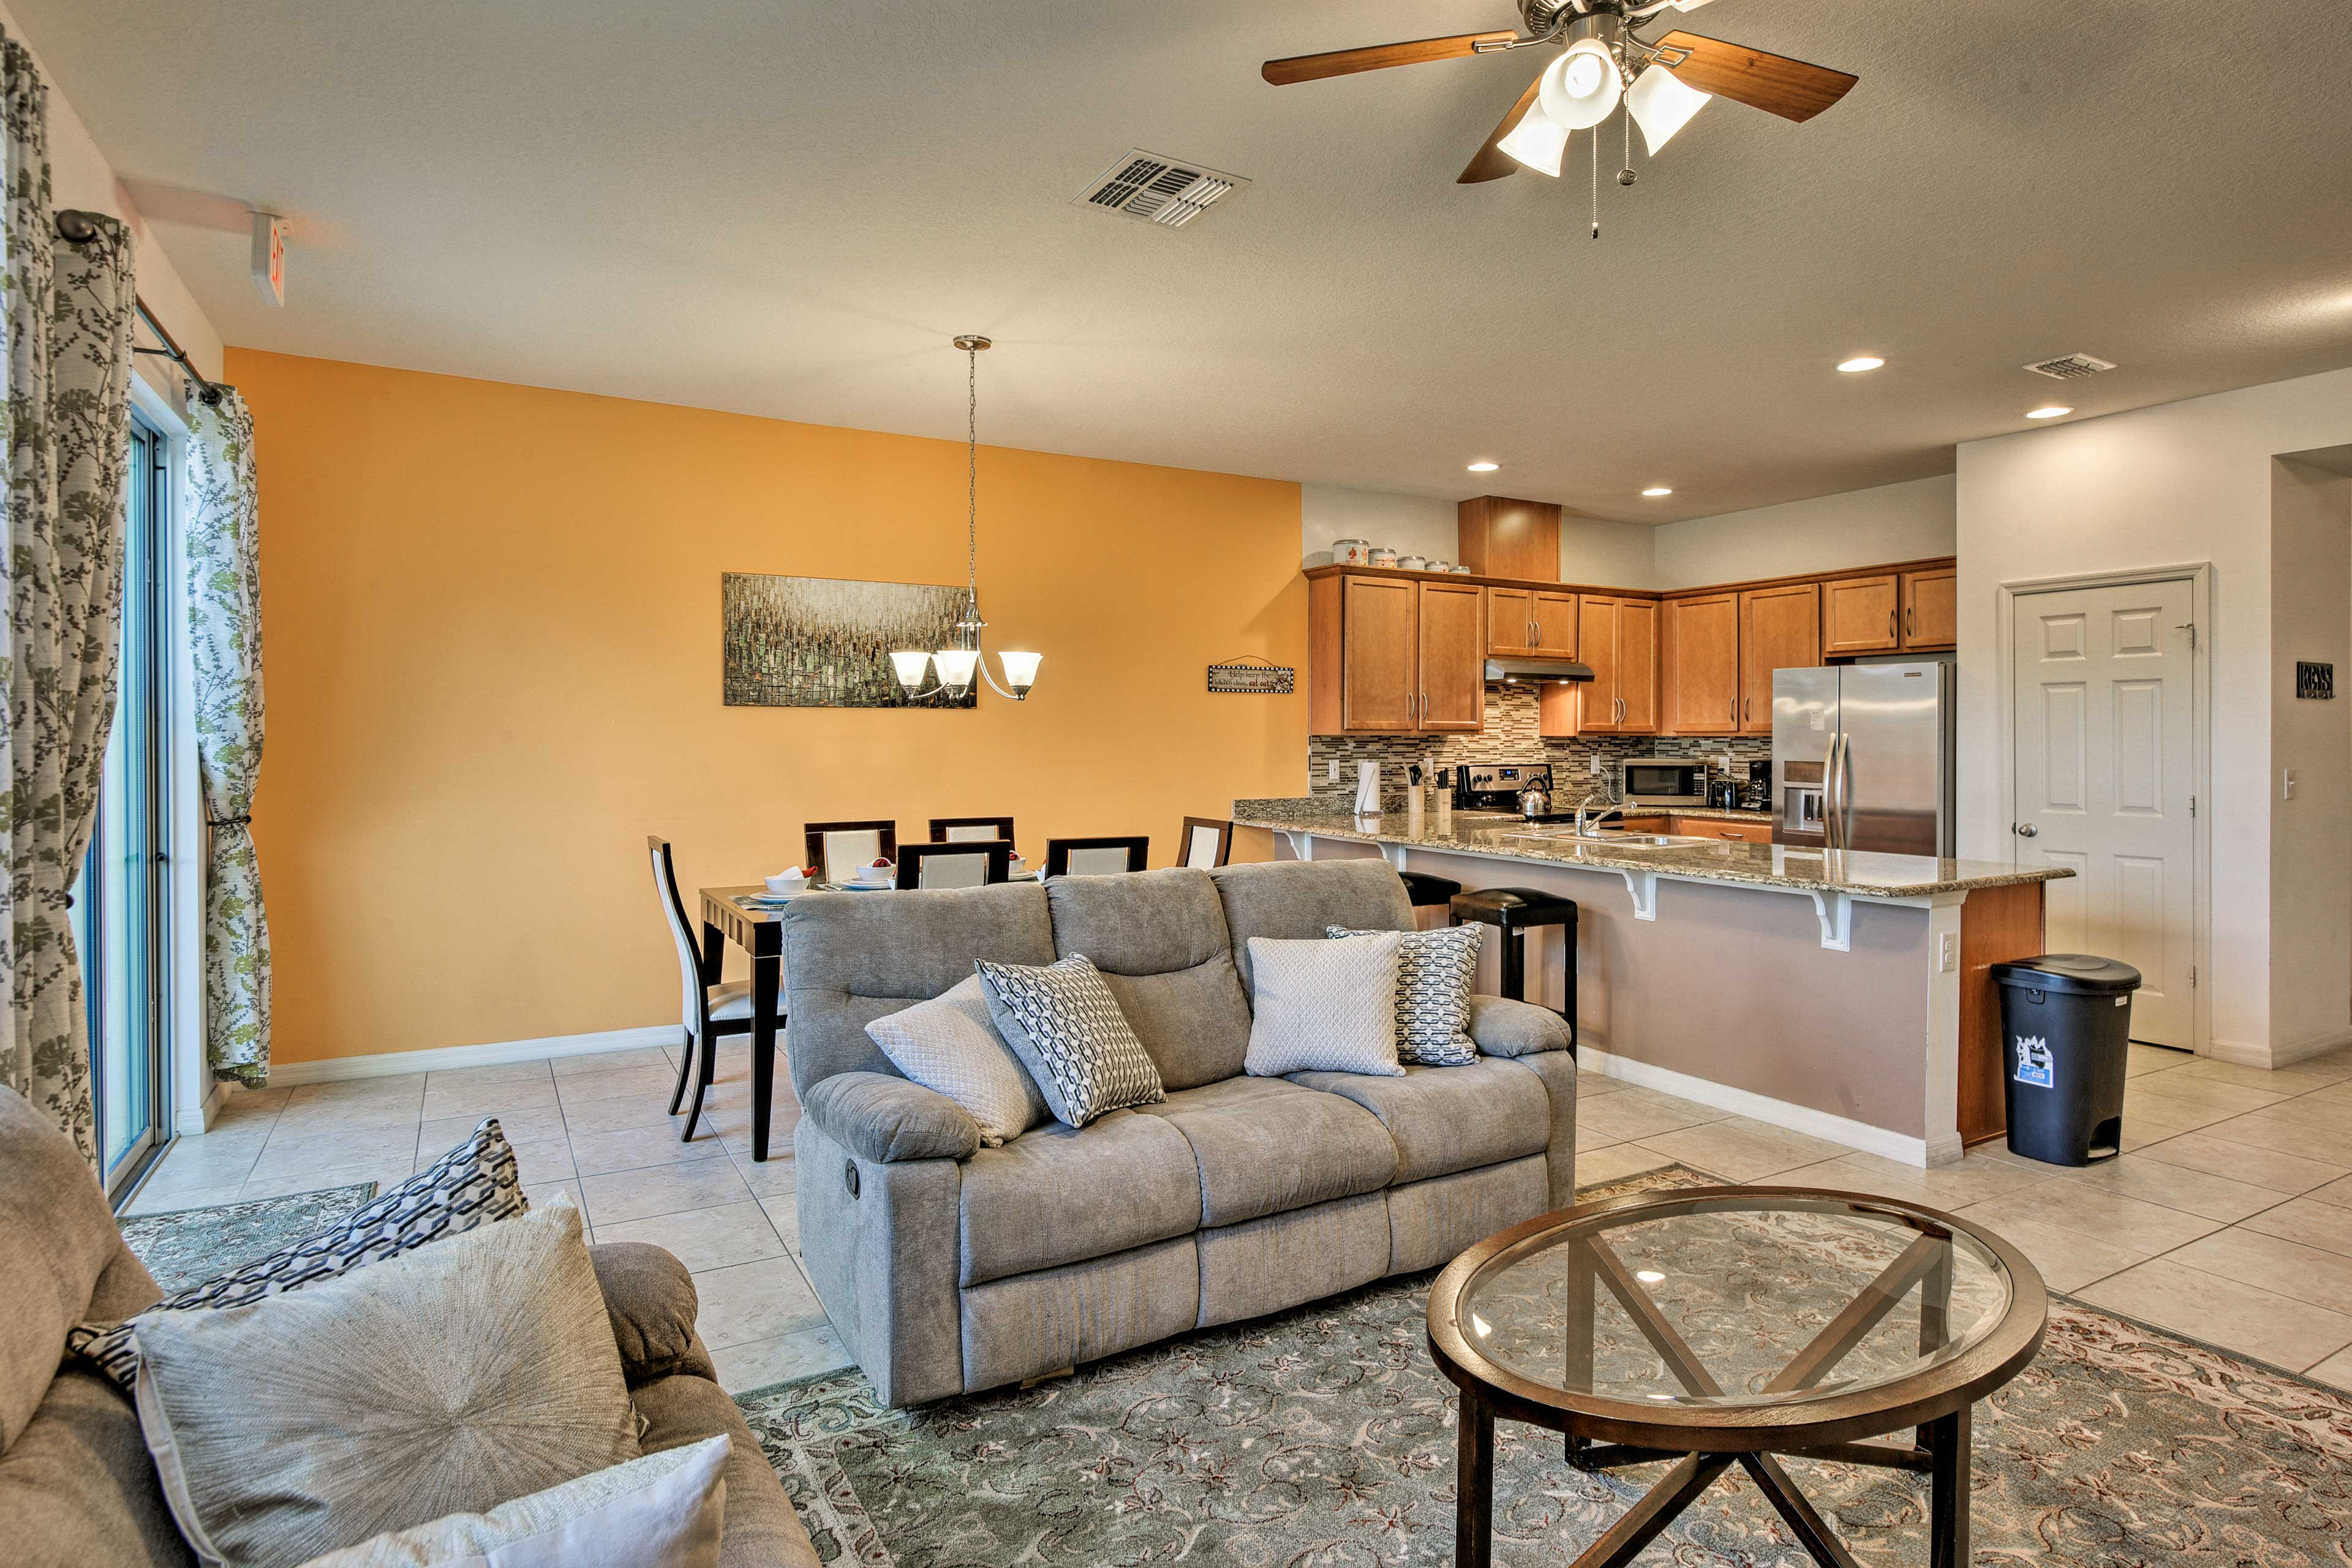 Spread out across over 1,600 square feet of living space.